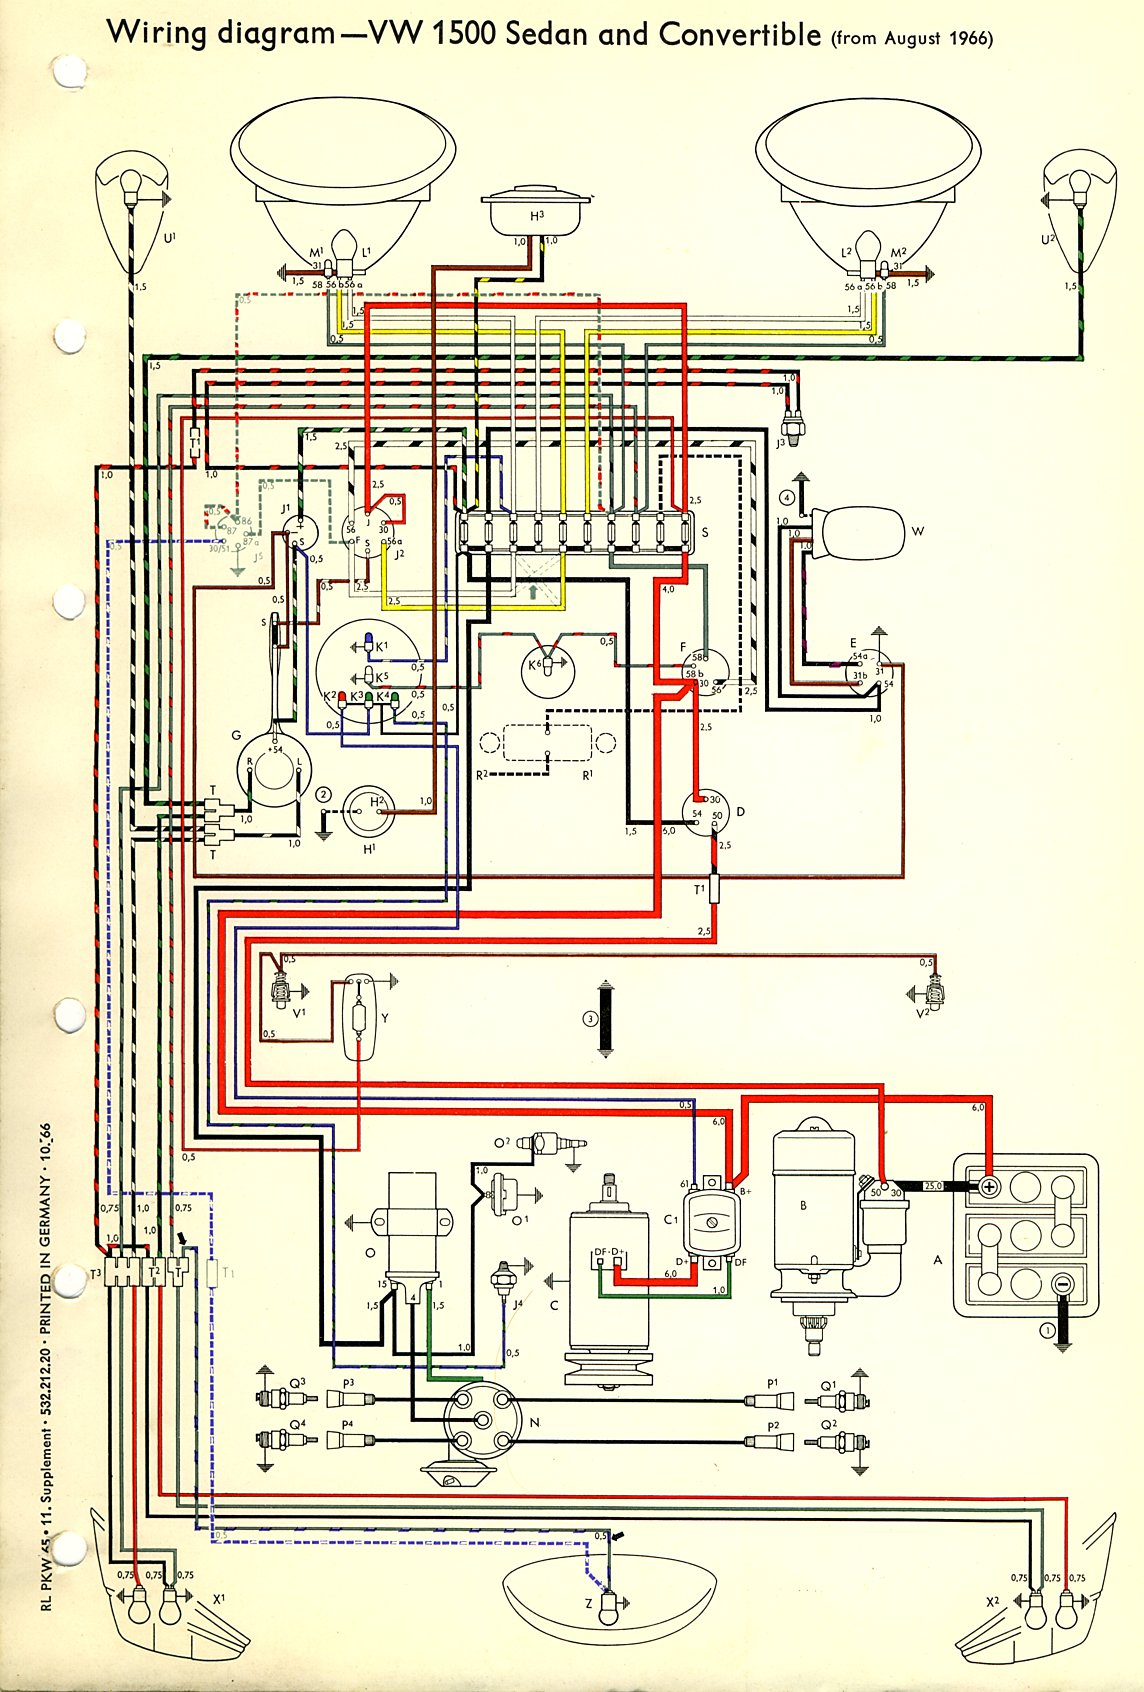 thesamba com type 1 wiring diagrams rh thesamba com 1969 vw beetle starter wiring diagram 1969 vw beetle fuse box diagram